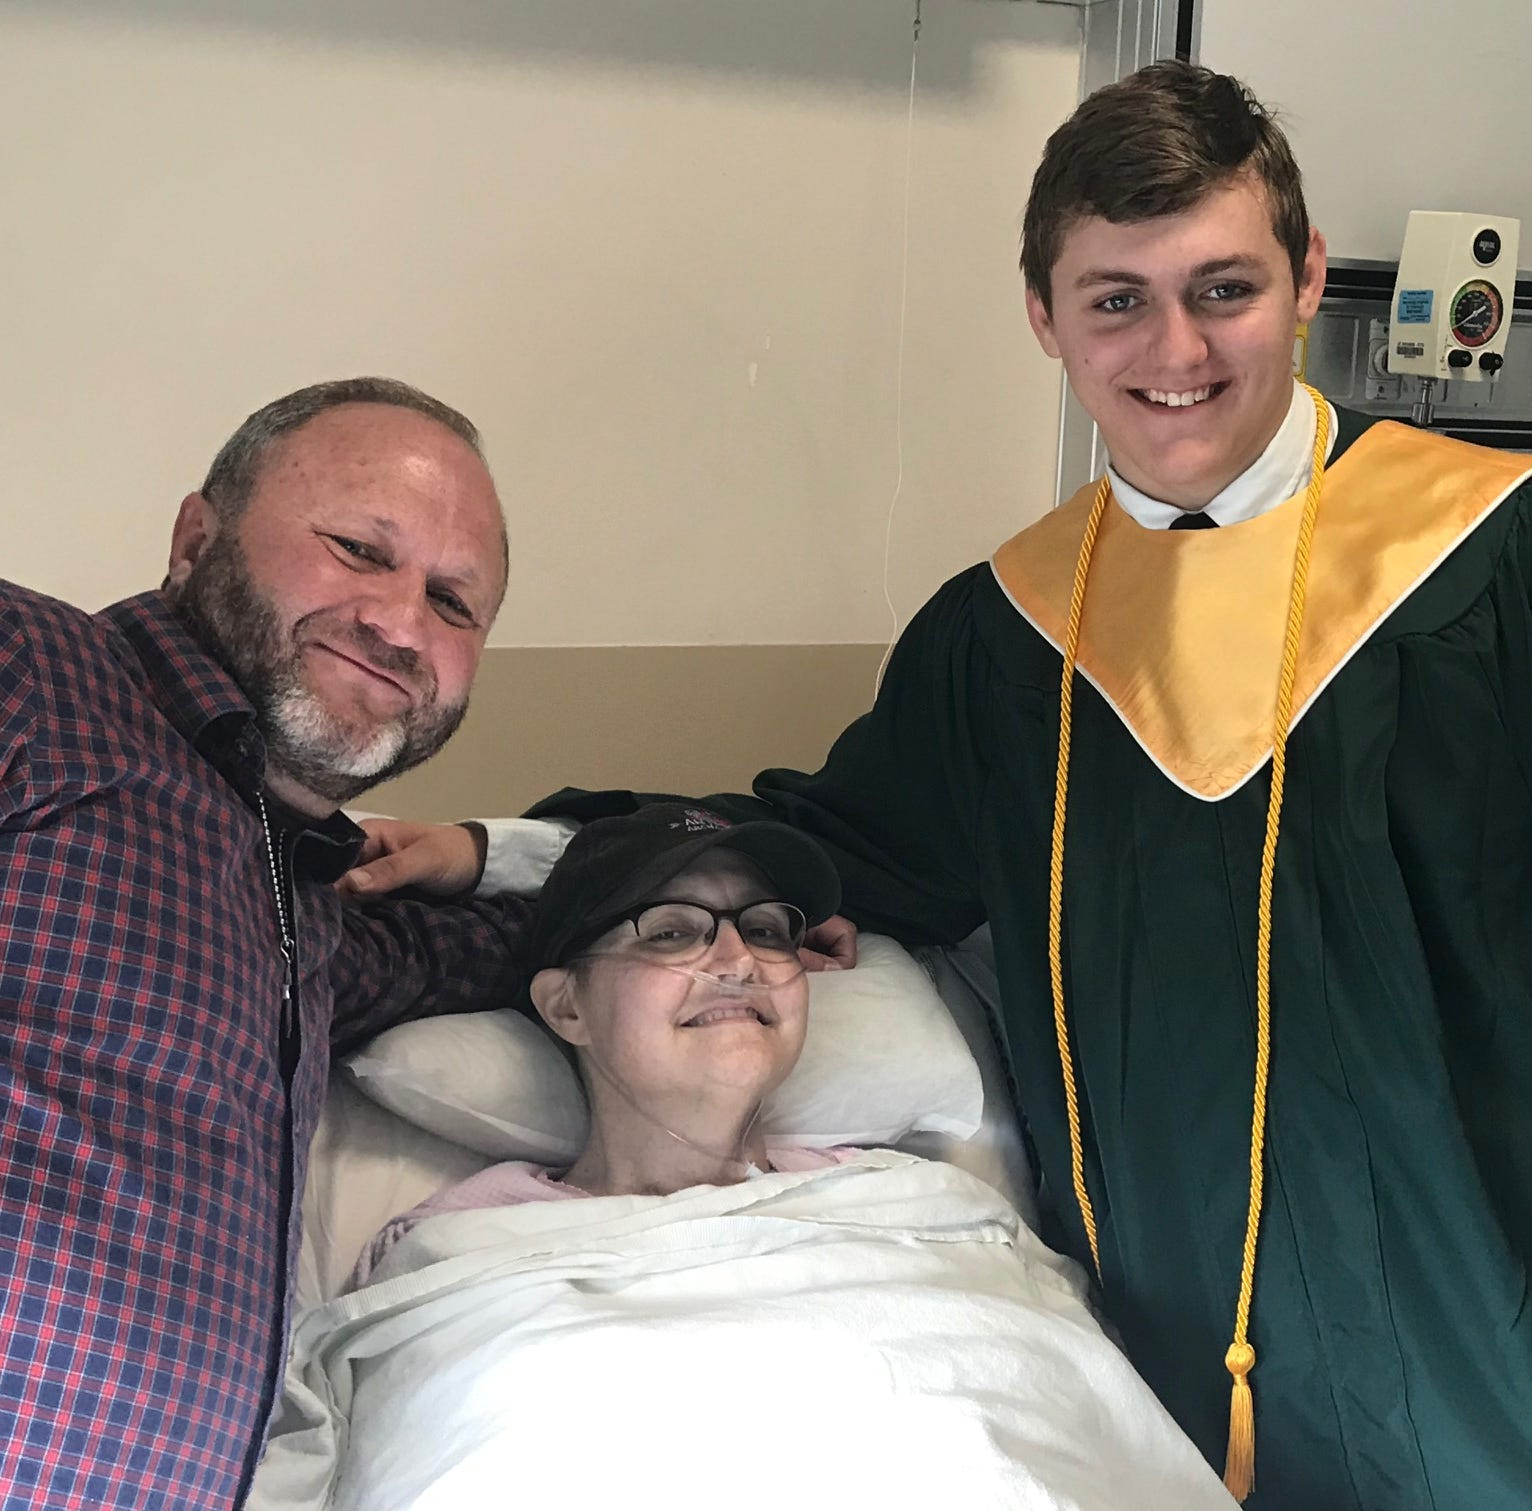 Lincoln High principal, superintendent bring special graduation to mom's hospital room